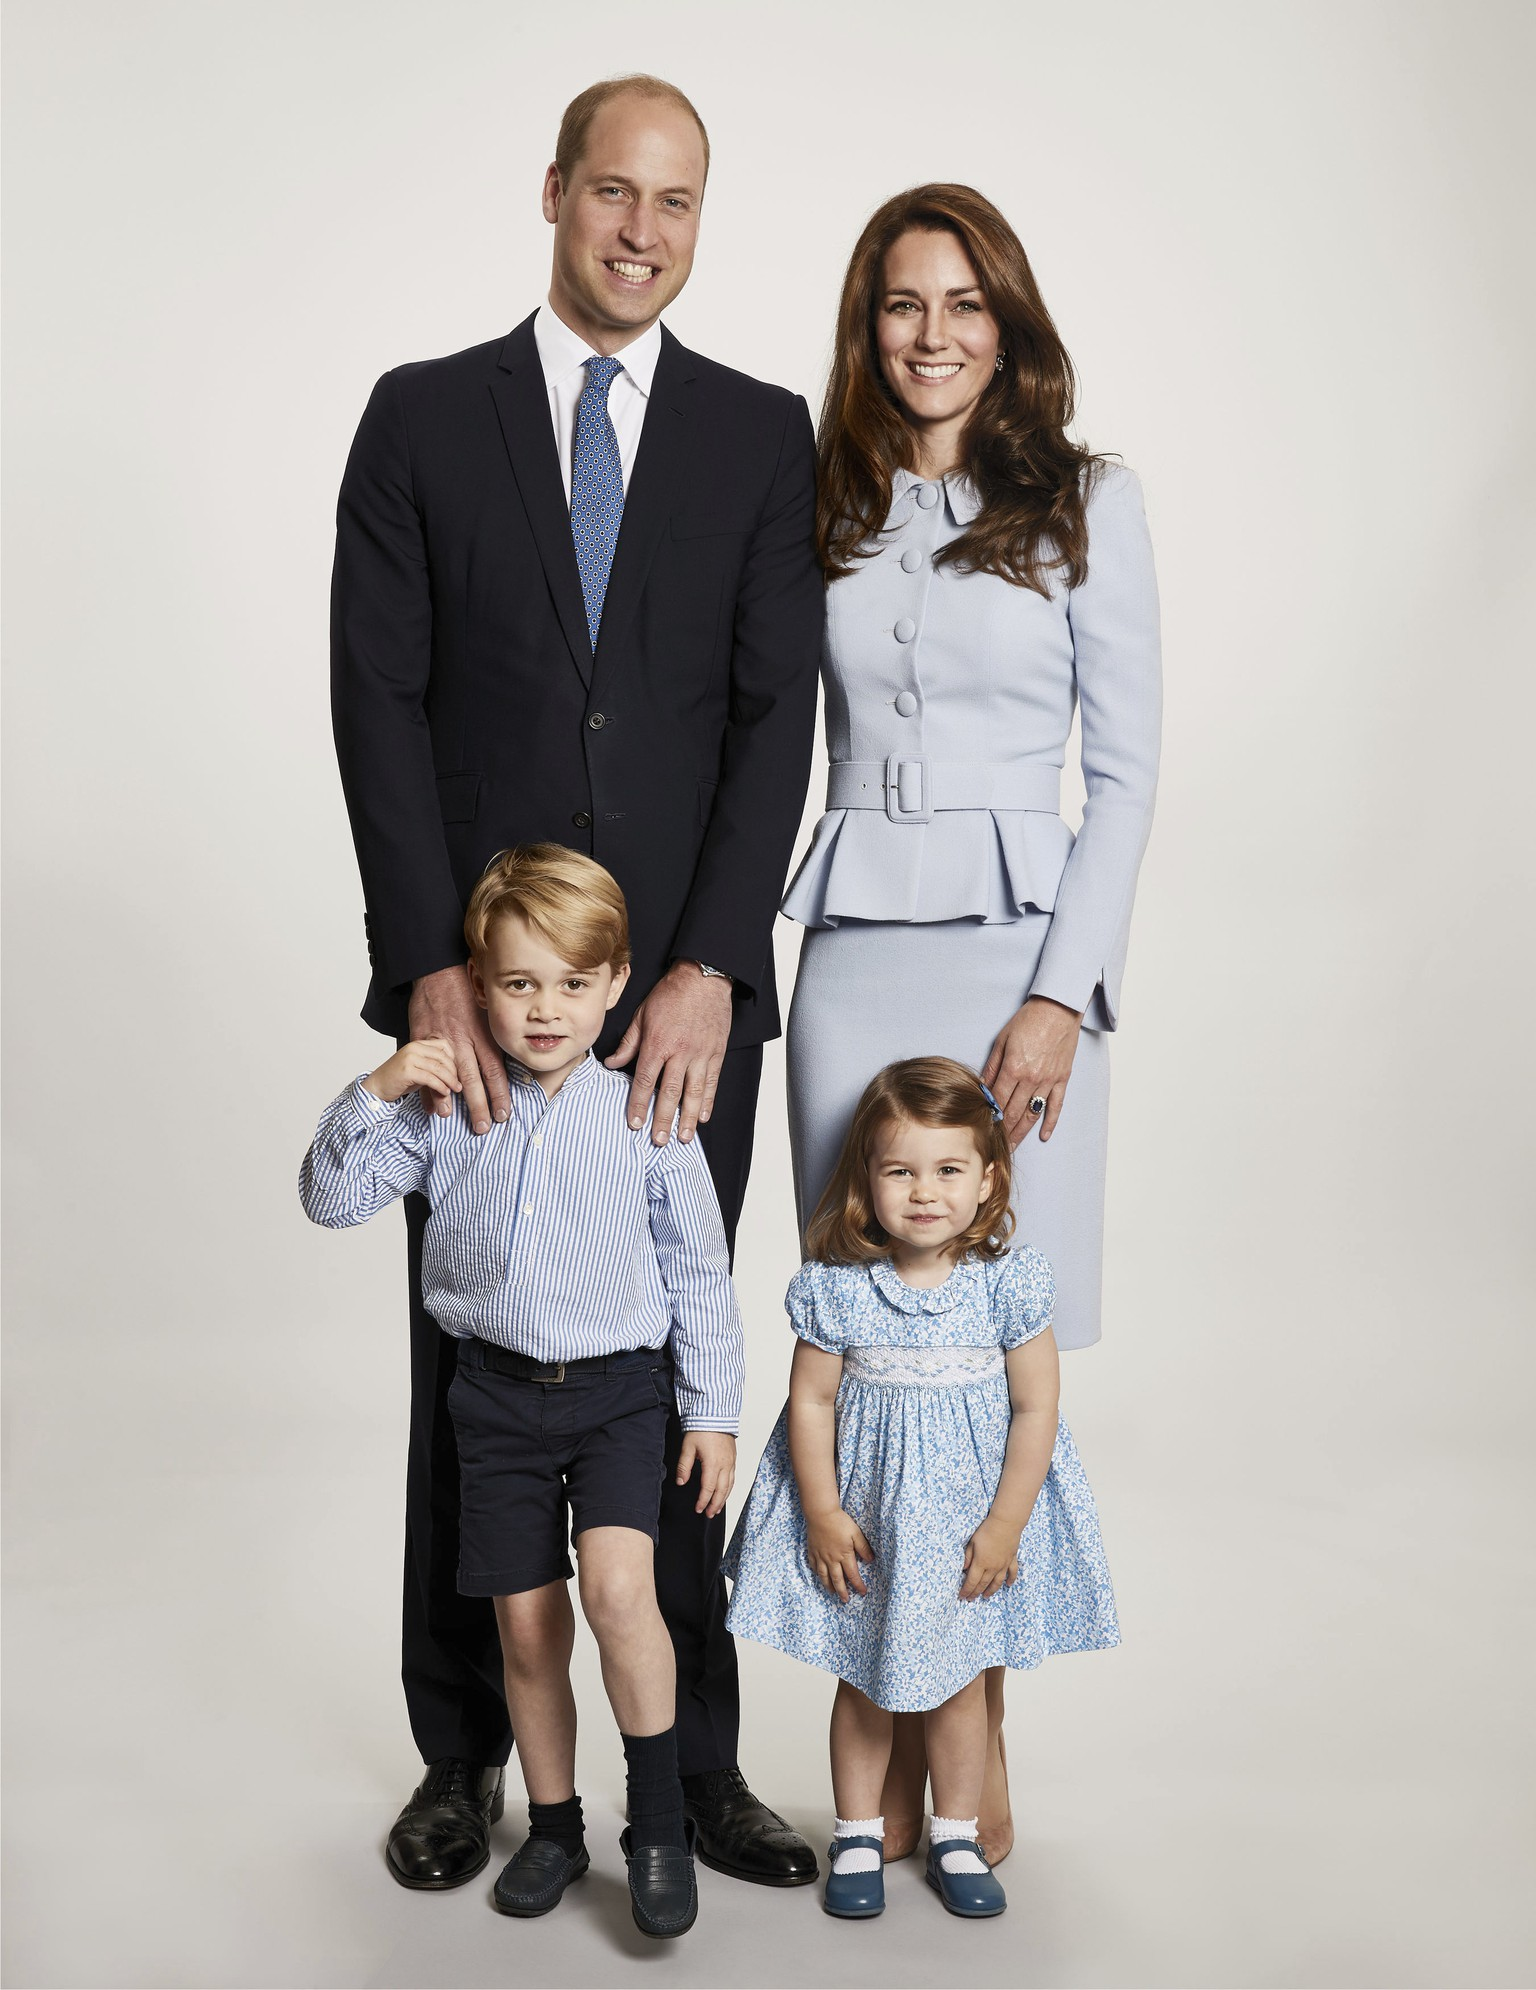 In this undated photo provided by Kensington Palace on Monday, Dec. 18, 2017, Britain's Prince William, background left and Kate, the Duchess of Cambridge pose with their children Prince George and Princess Charlotte, at Kensington Palace. The photo has been used on the Cambridges' Christmas card.  (Chris Jackson/Kensington Palace via AP)